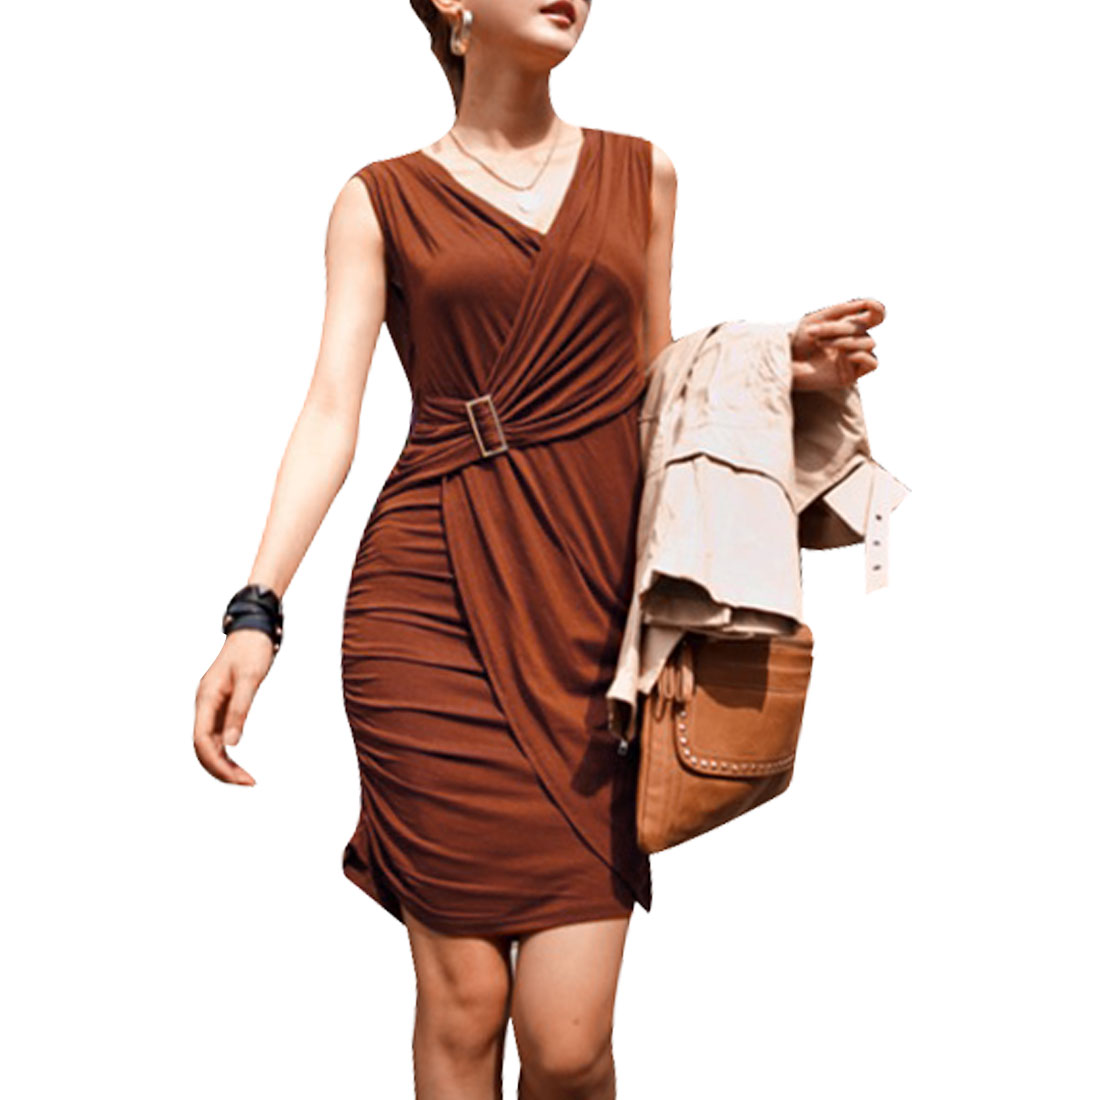 XS Women Sleeveless Pullover Low Round Neck Hip Hugging Mini Dress Coffee Color